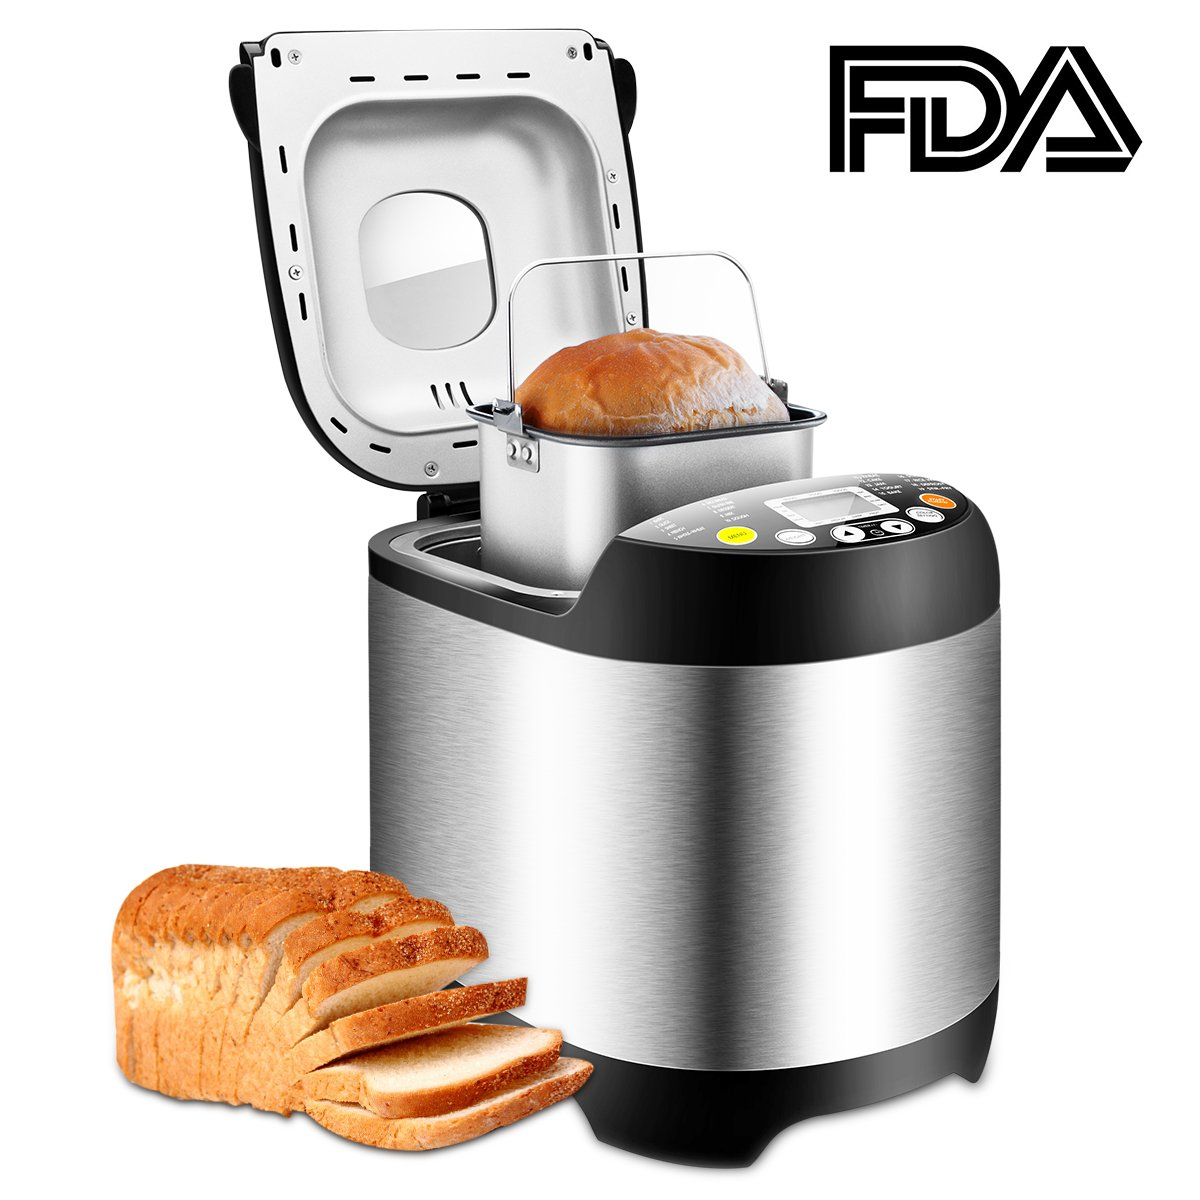 Bread Maker, TOBOX 19 Automatic Programs Bread Machine, Programmable Breadmaker Machine with 3 Crust Color, 15 Hours Delay Time and LCD Display- Stainless Steel, 1LB/1.5LB/2LB